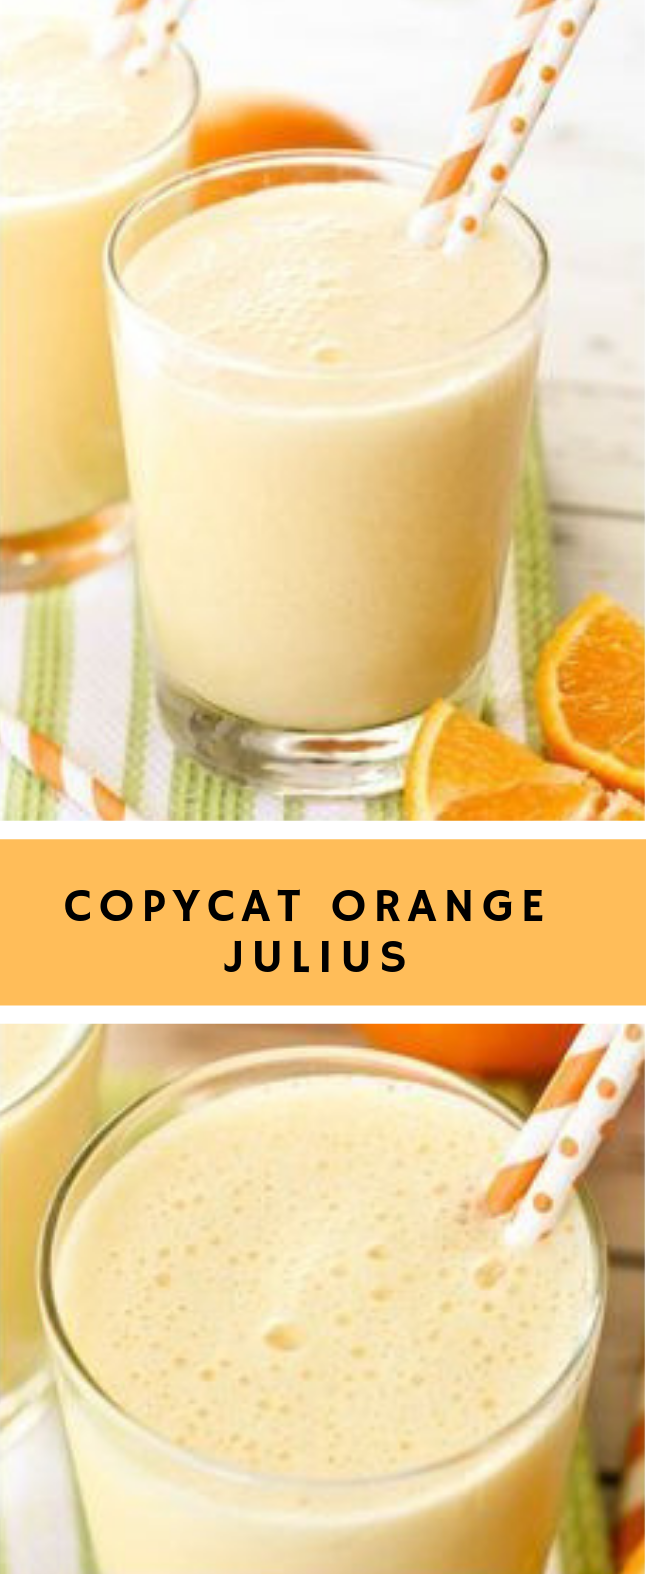 COPYCAT ORANGE JULIUS #freshdrink #yummy